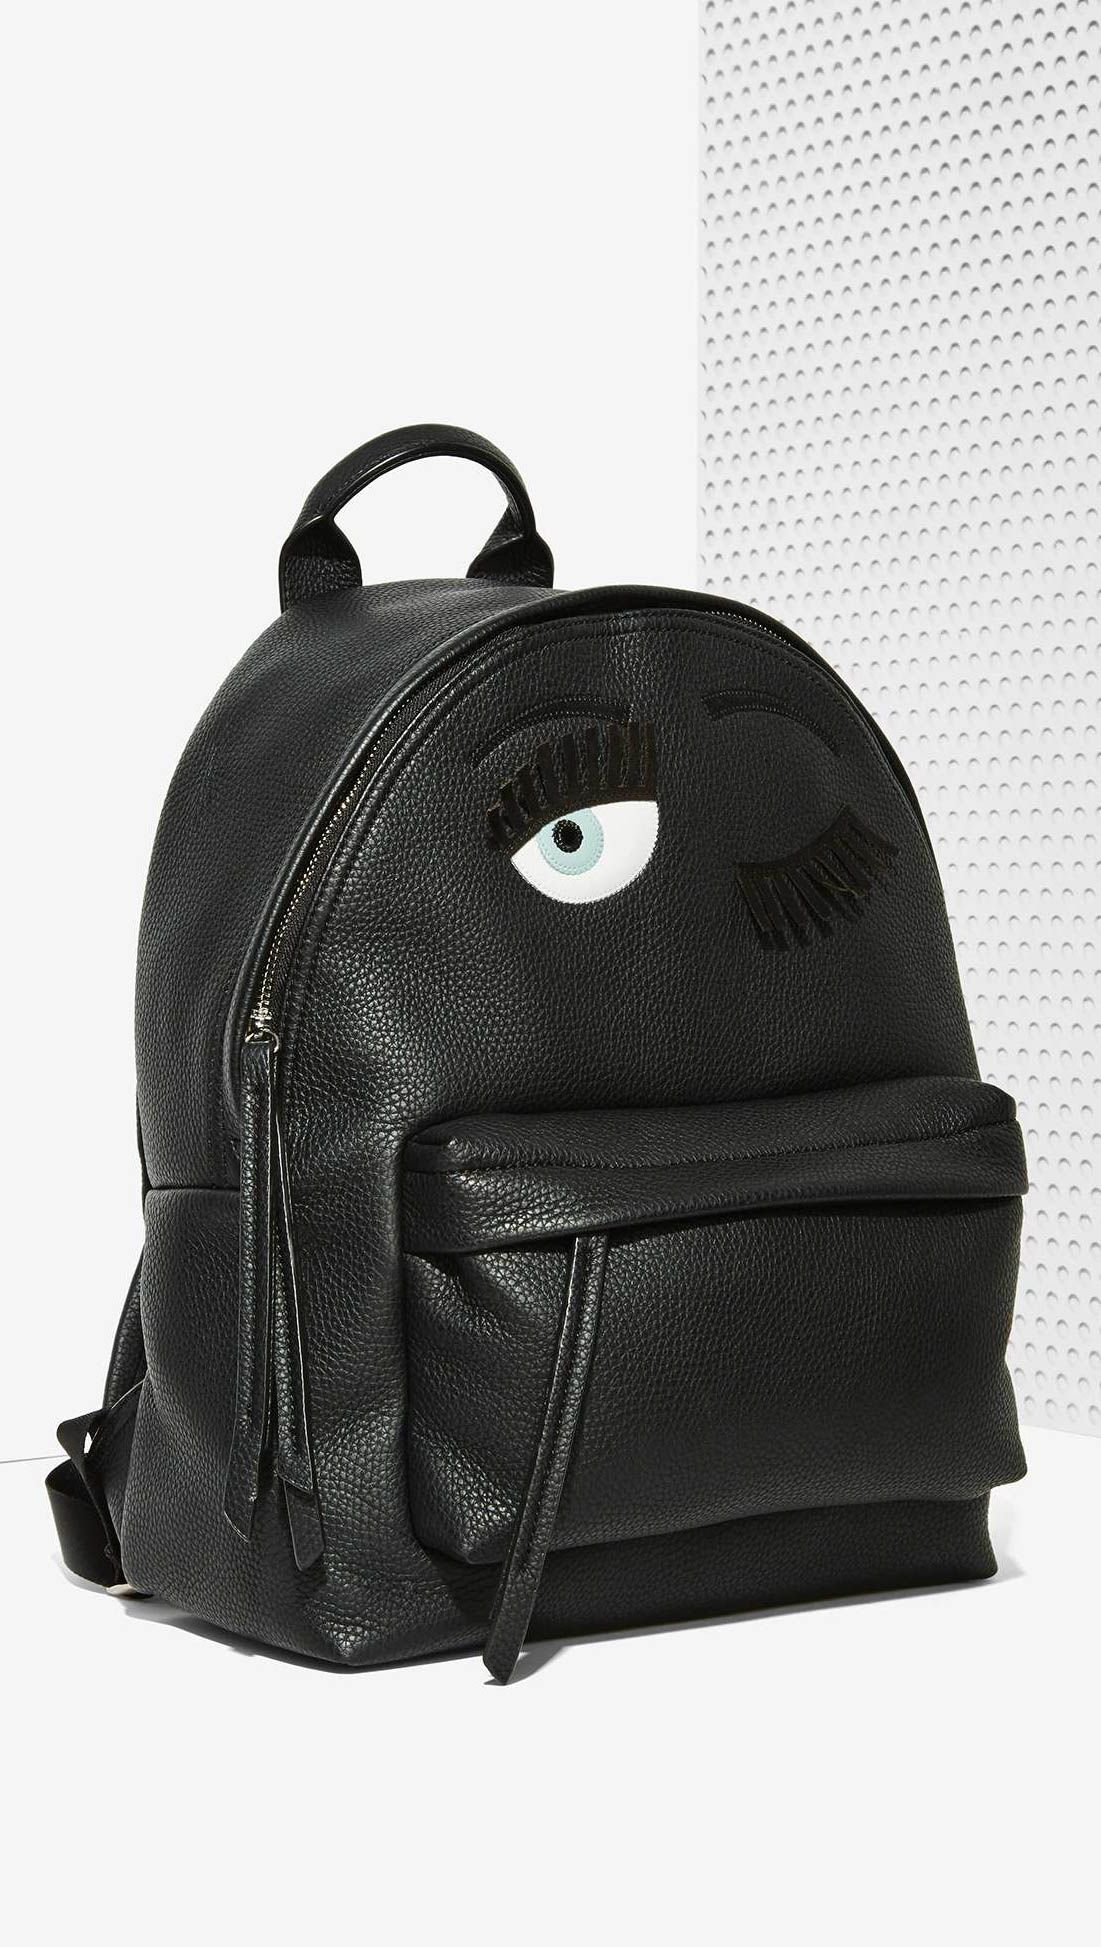 1d7230727 This backpack is sure to be an attention-grabber! | Absolutely Love ...